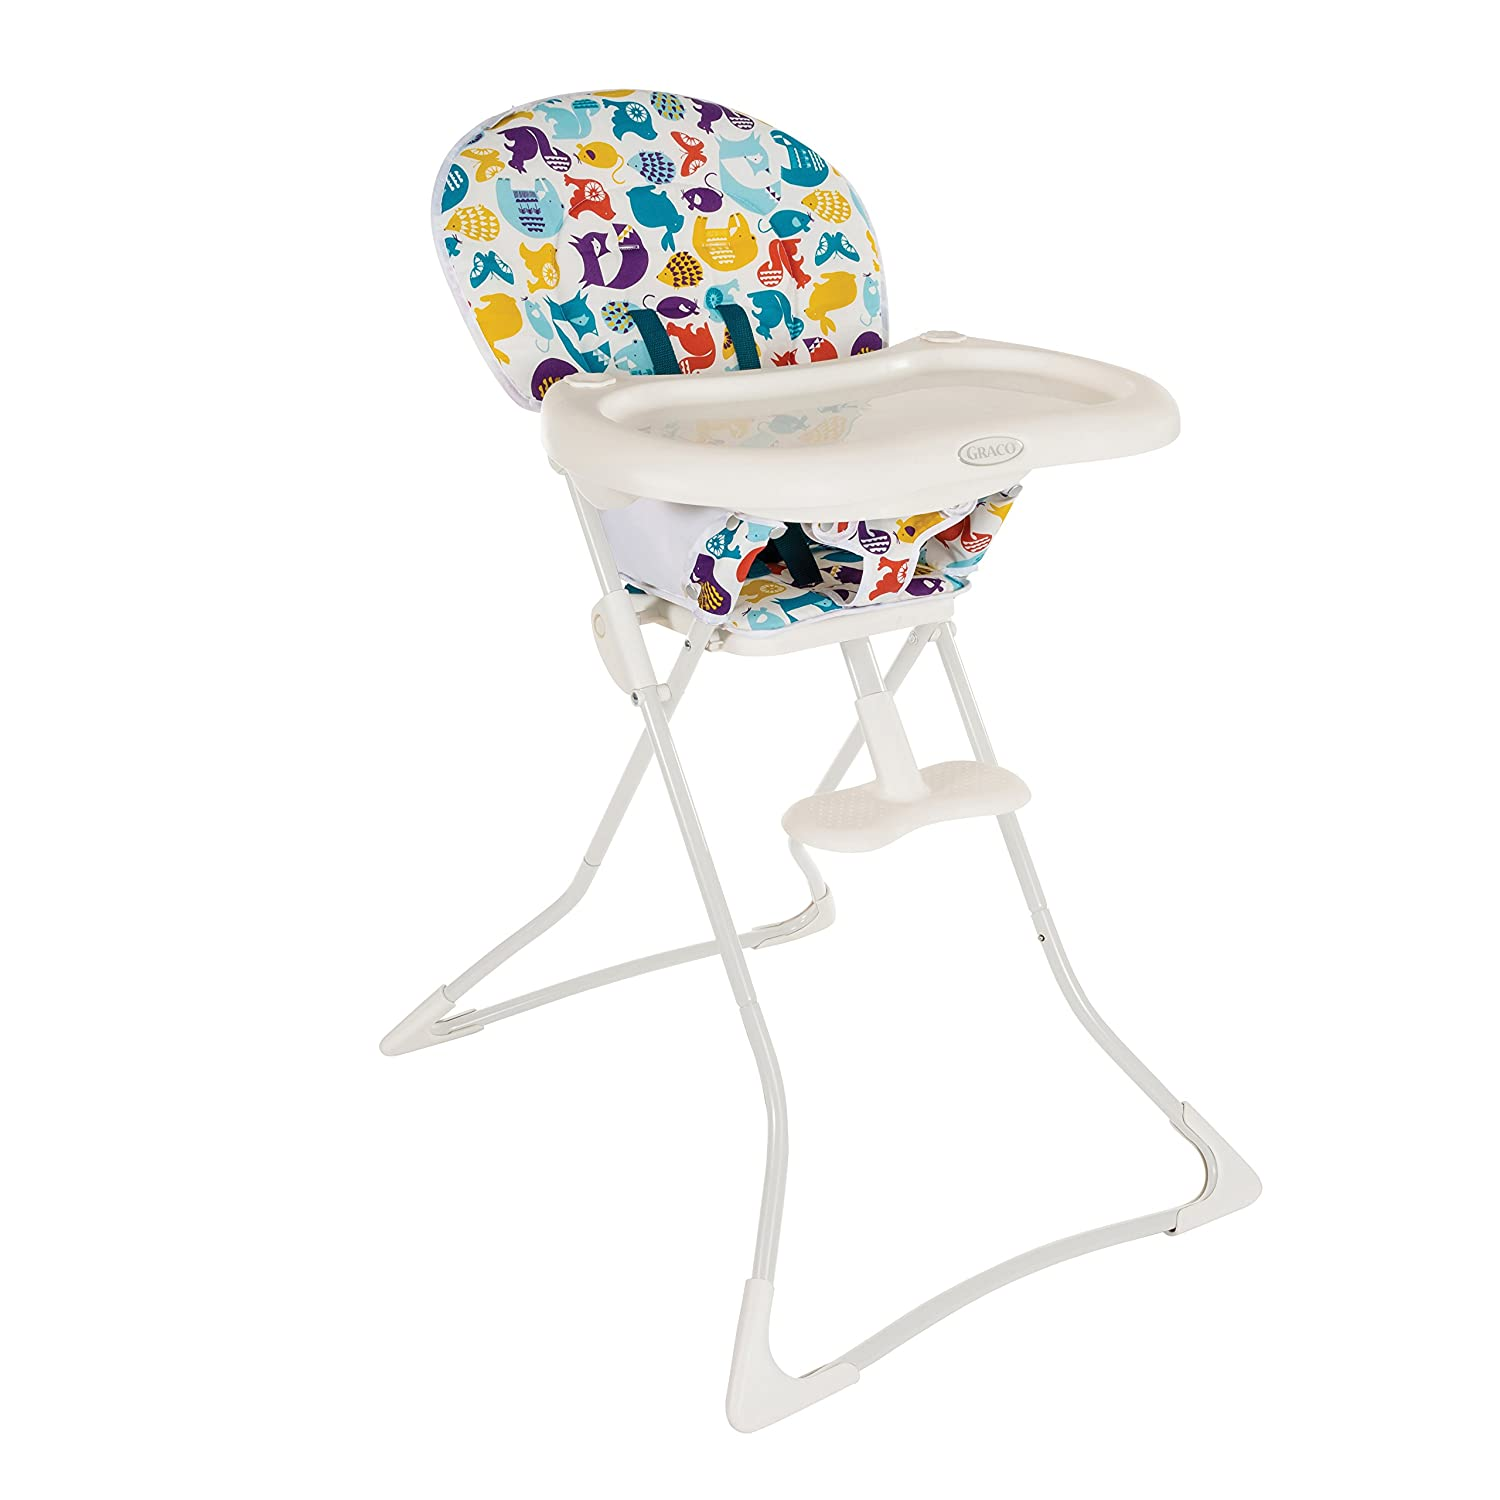 Graco Tea Time pact Folding High Chair with Colourful